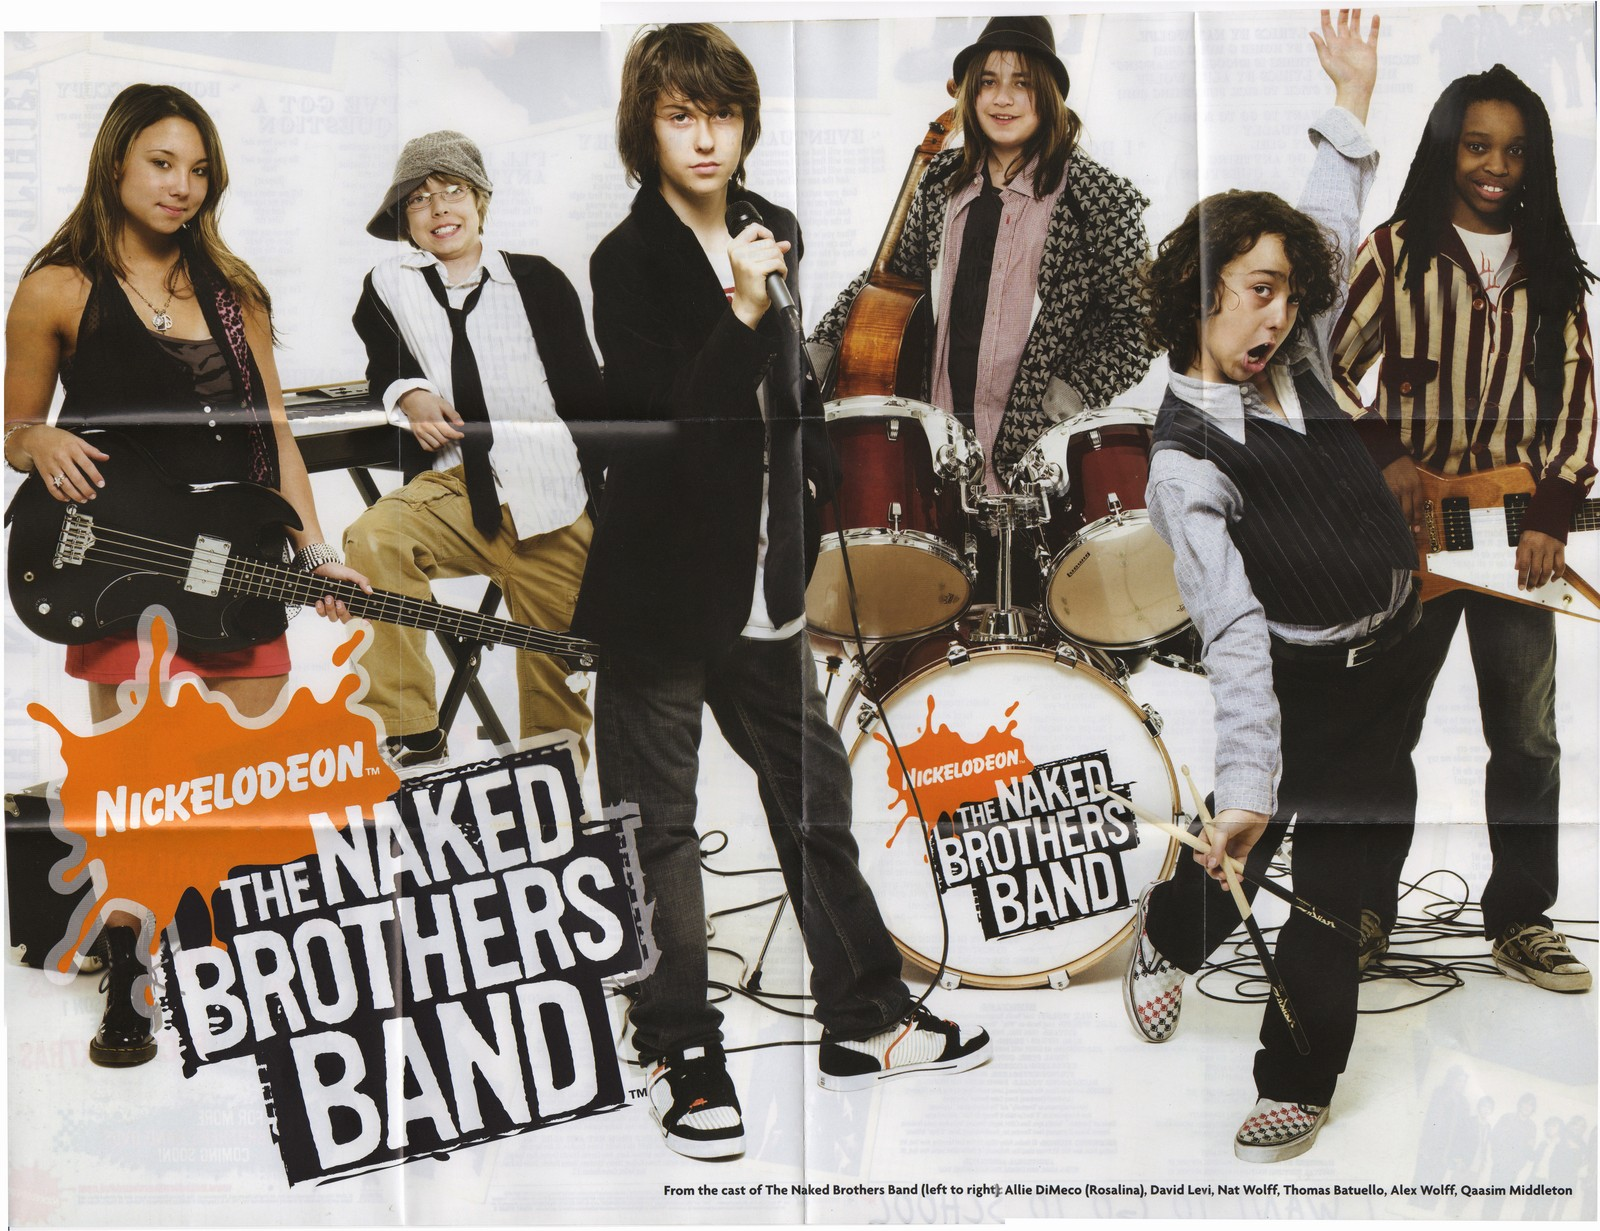 I love the naked brothers band